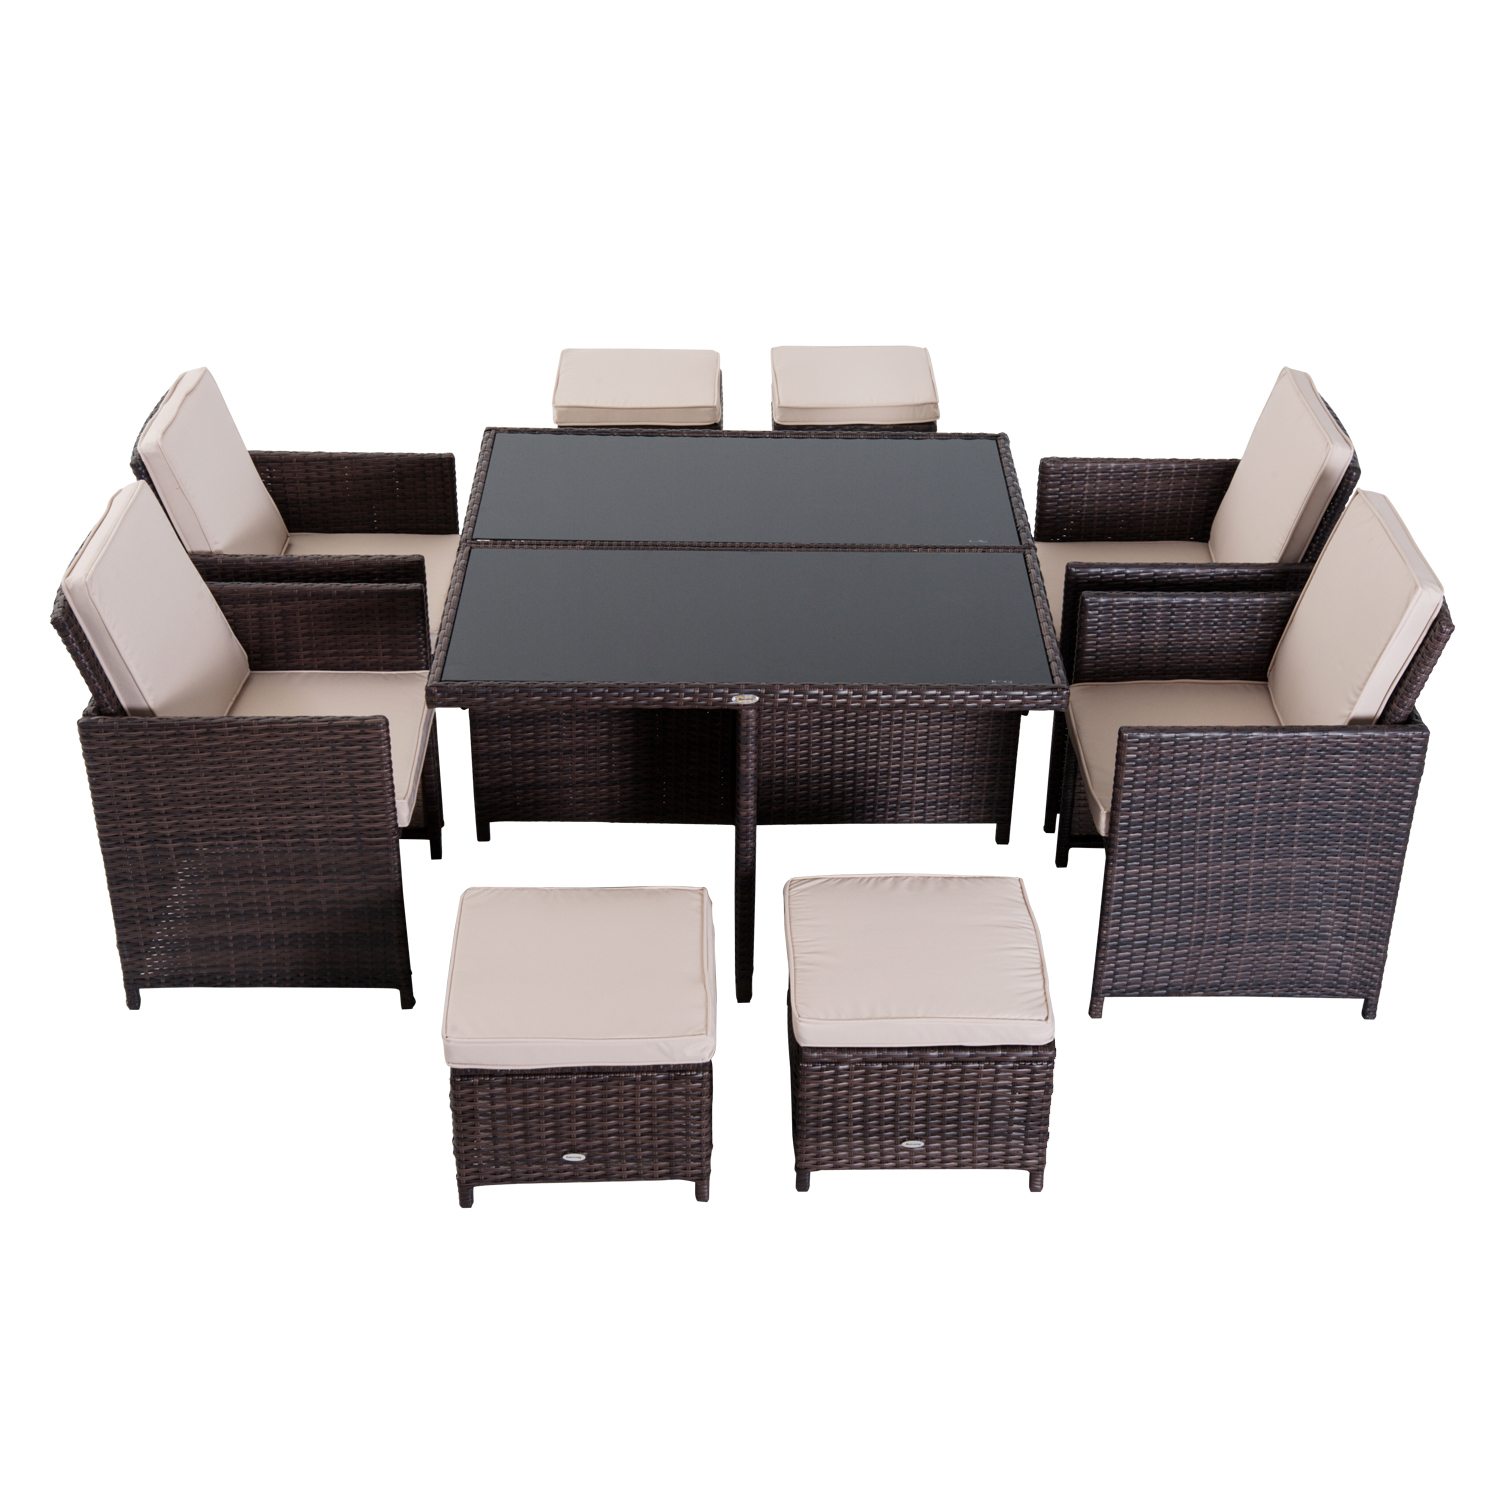 Image of £399.99 Outsunny 9 PCS Rattan Dining Set-Brown / 9PC Wicker Furniture Outdoor Set Easy Storage Garden Table Chairs with Foot Stool Thick Cushion - Brown Pieces Seat Woven 861-028BN 5056029889633